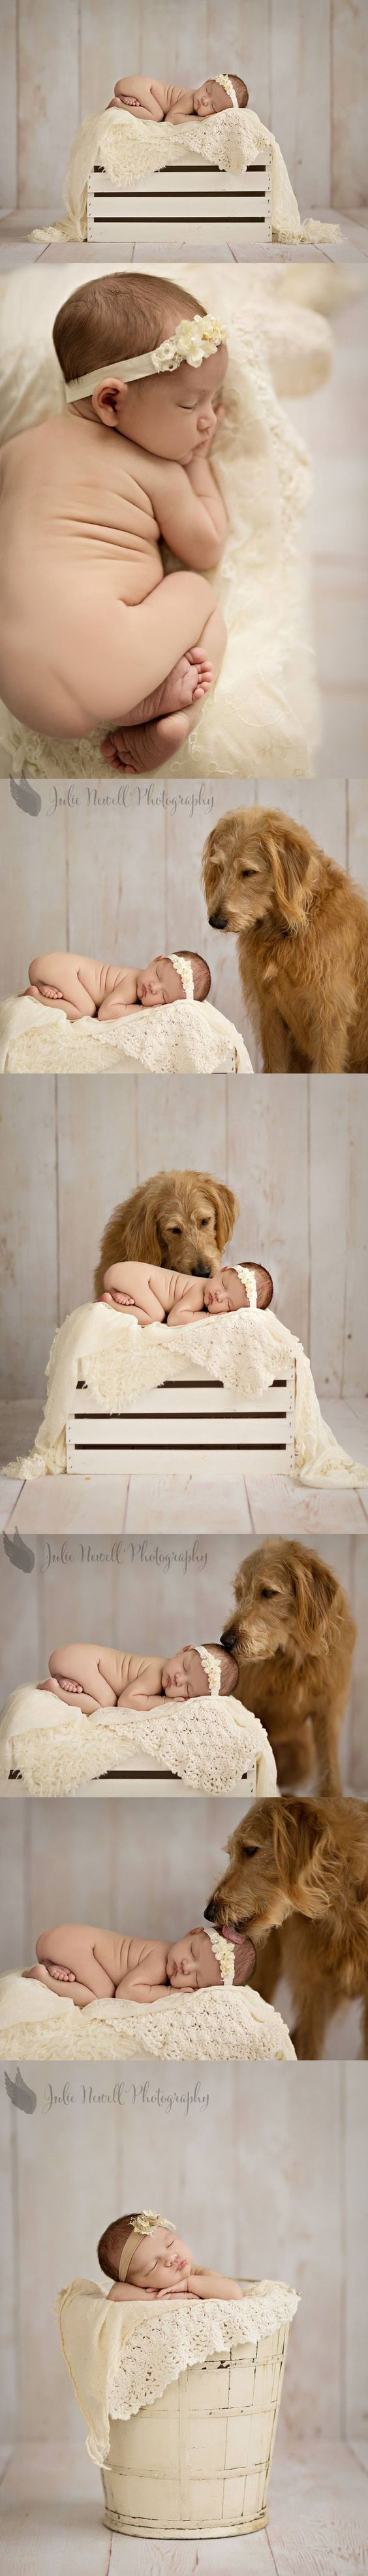 newborn photography - Tap the pin for the most adorable pawtastic fur baby apparel! You'll love the dog clothes and cat clothes!